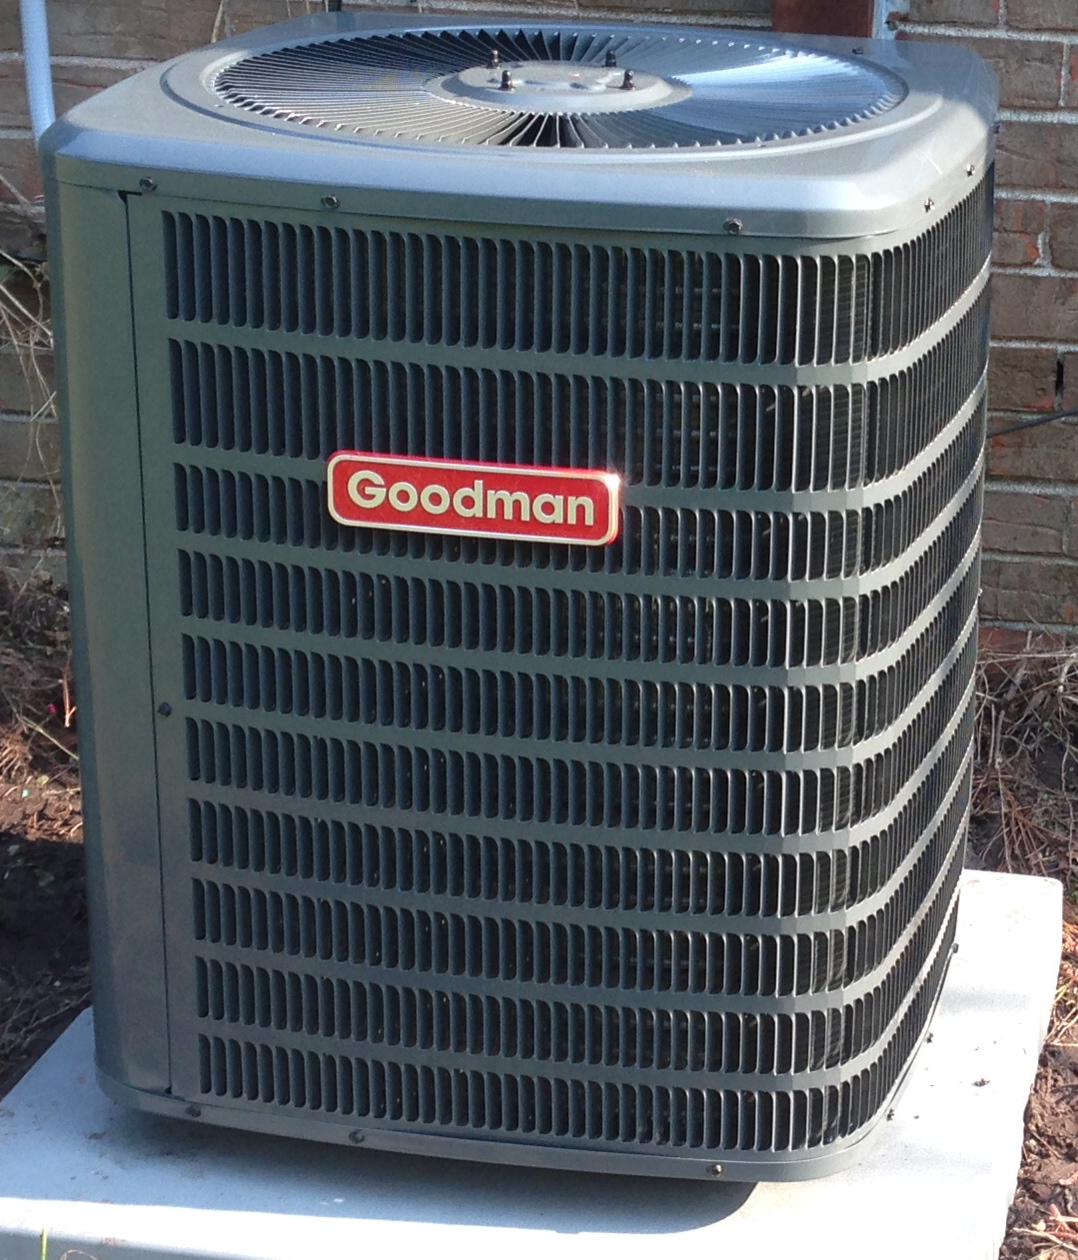 New air conditioning unit cost - Goodman Install